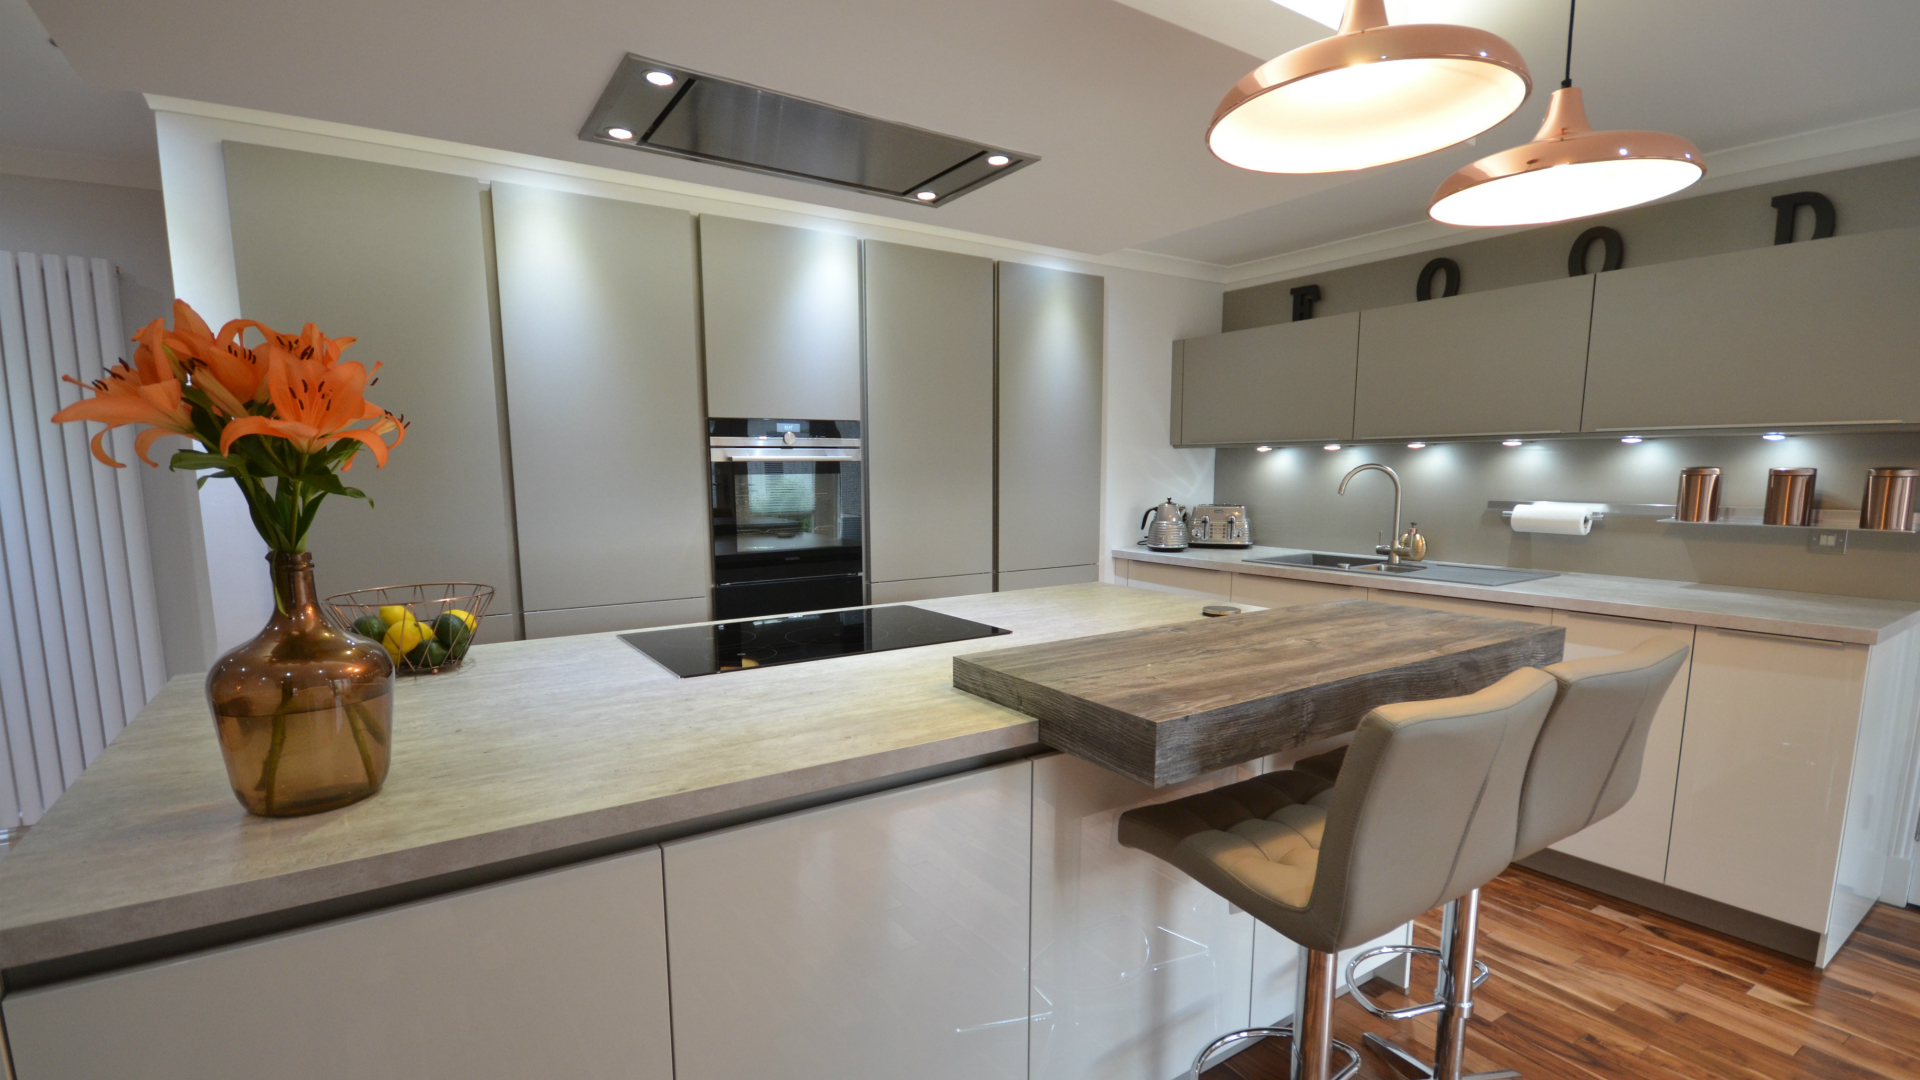 Image 1: Norma's New Kitchen